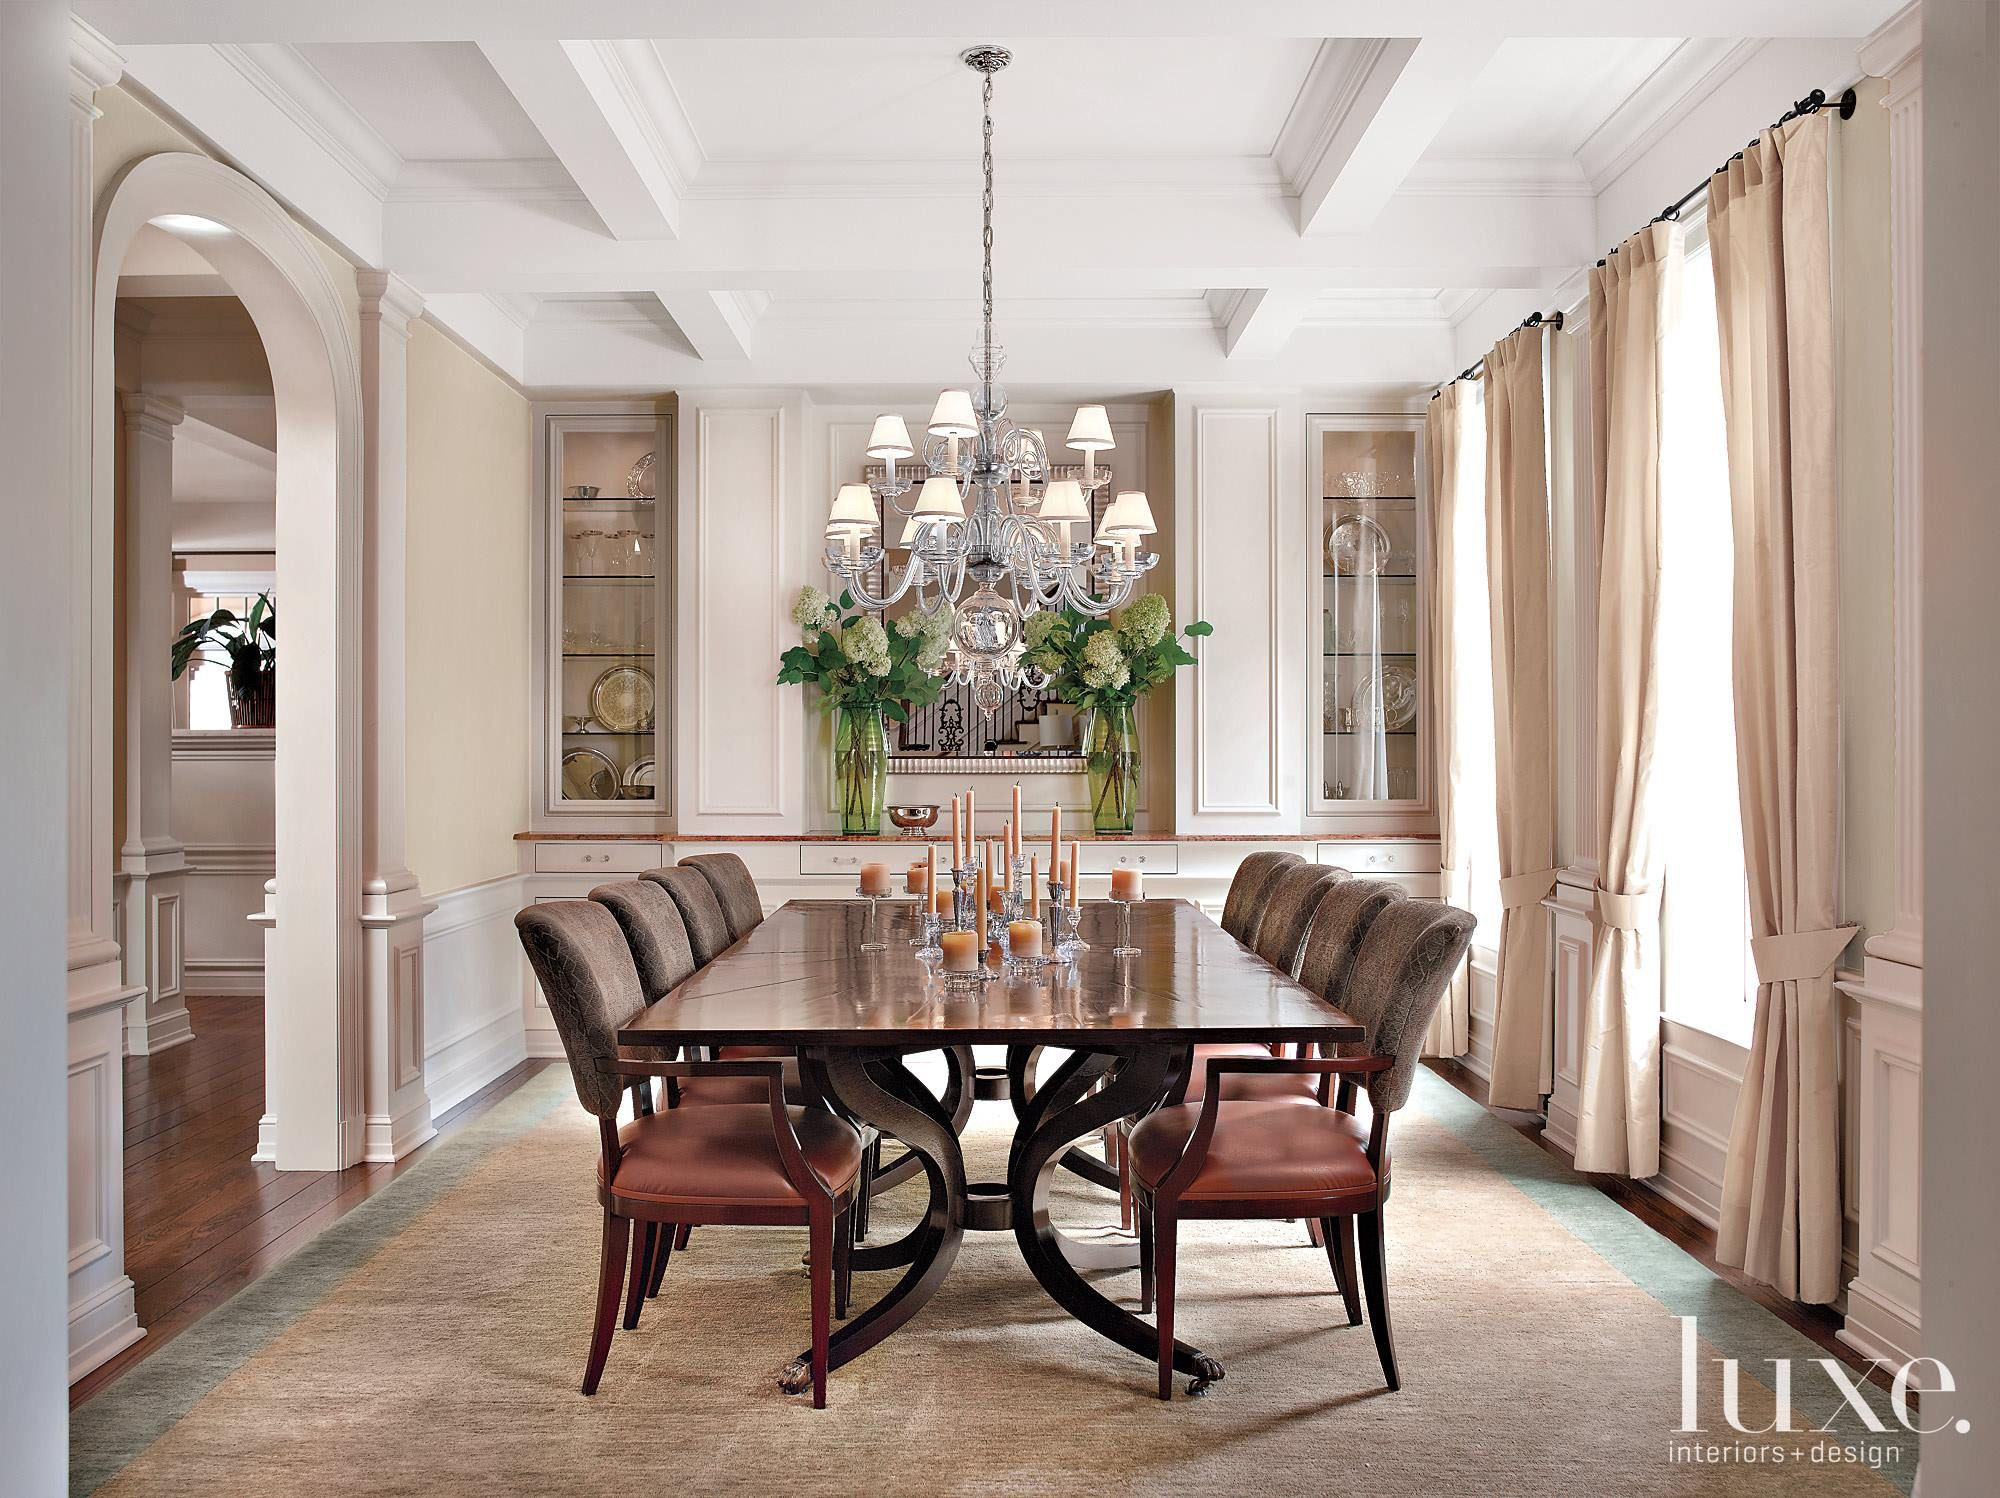 Pictures Of Formal Dining Rooms: Beautiful Formal Dining Room....